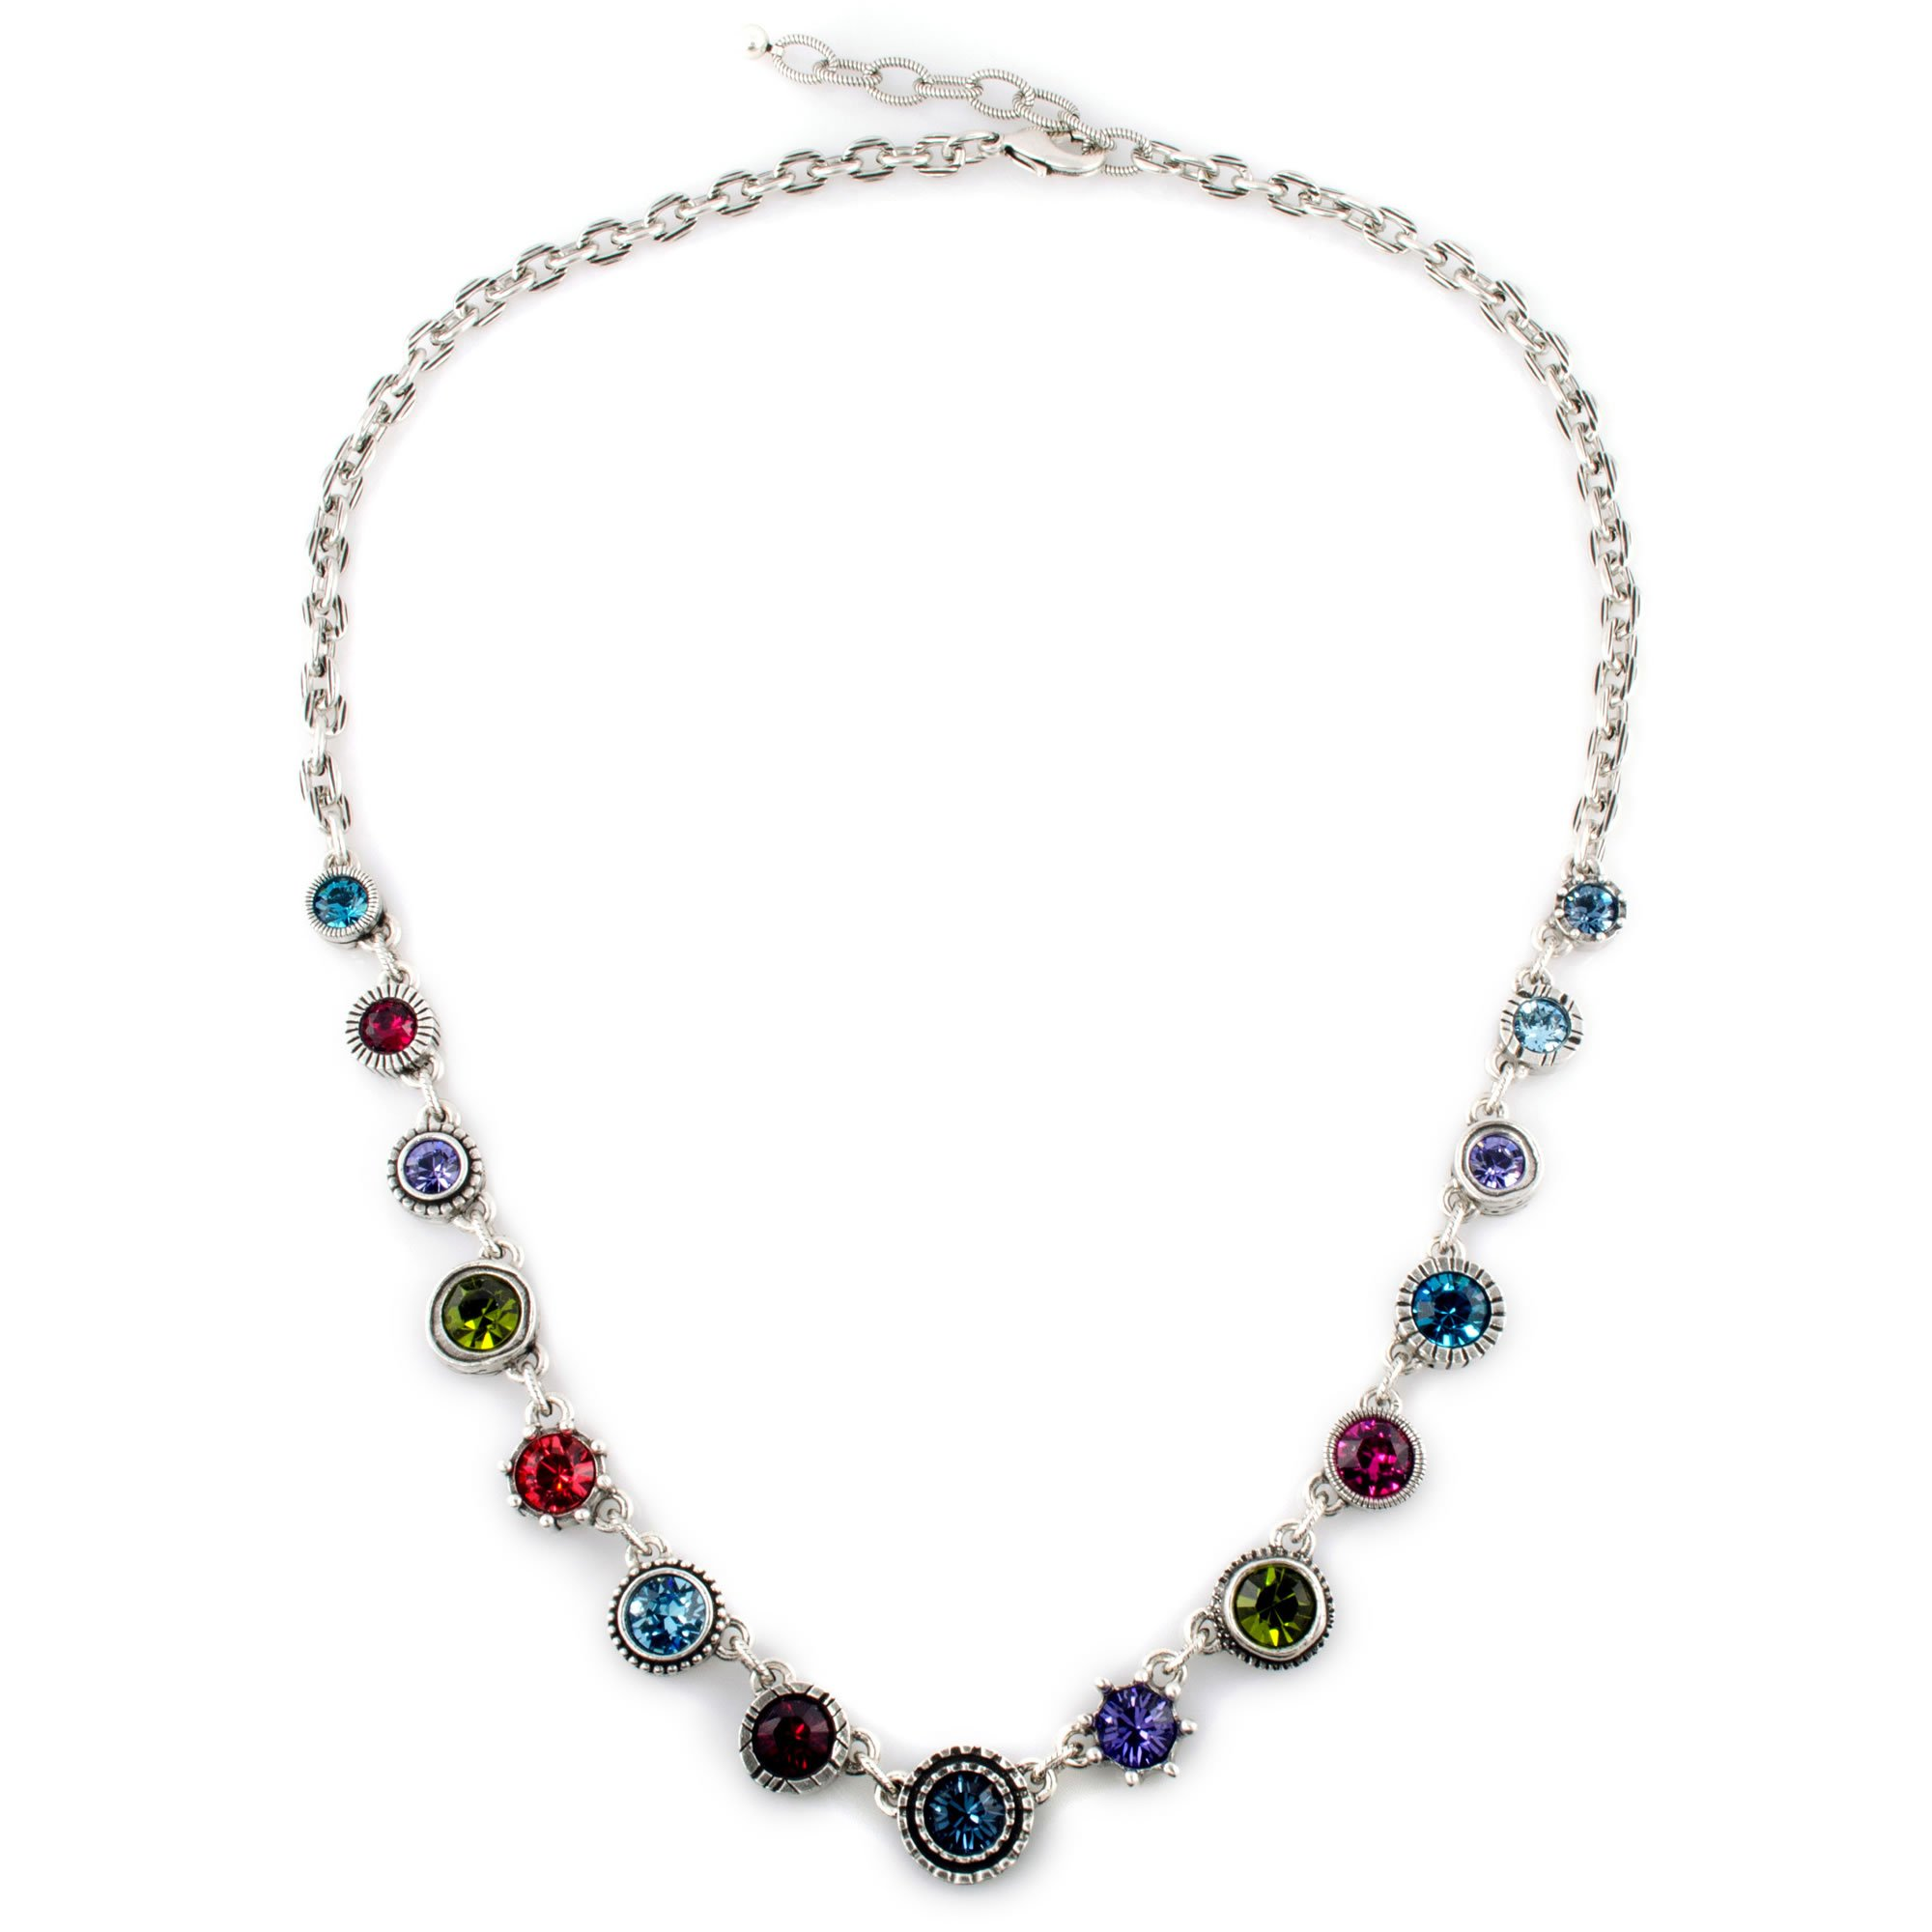 Patricia Locke Get a Round To It Necklace in Silver, Celebration Color Story